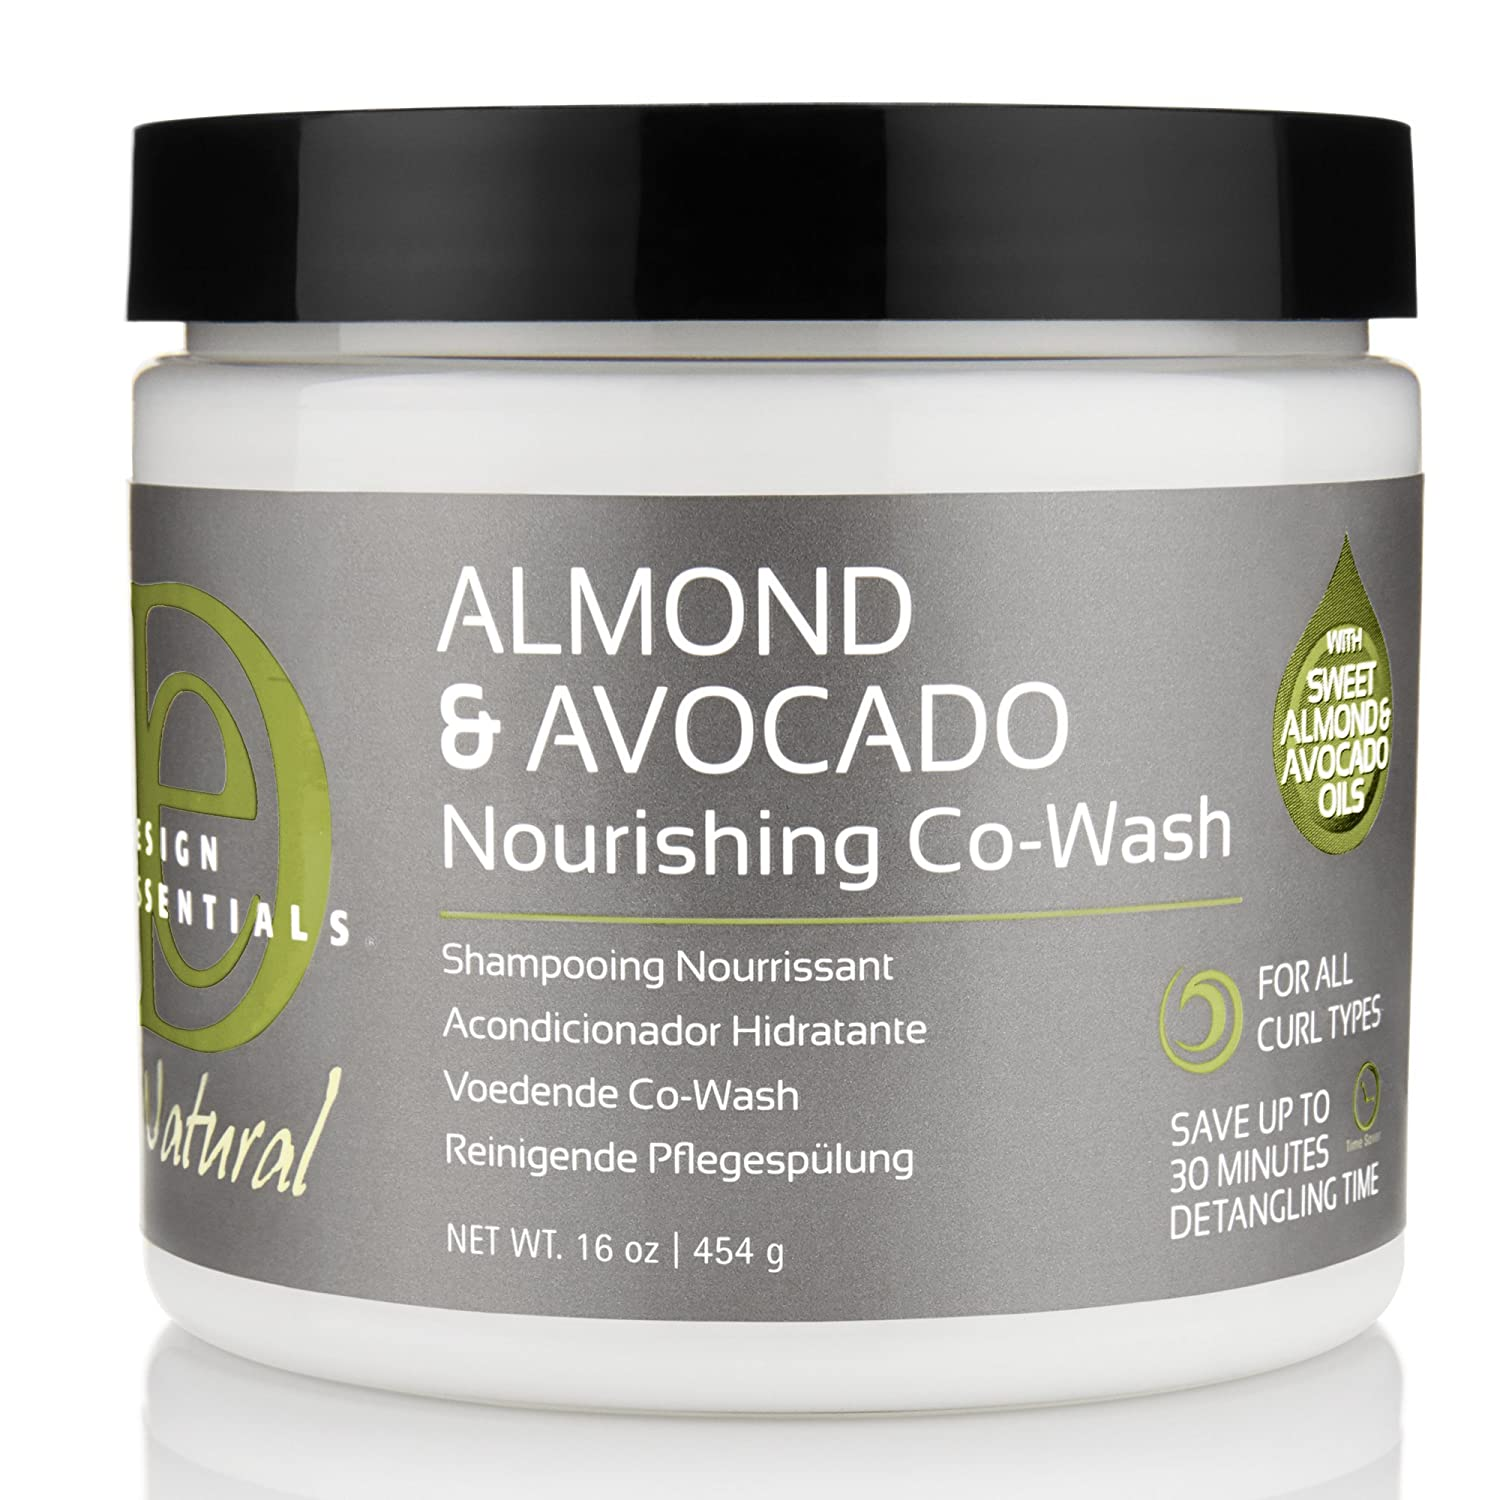 Design Essentials Natural 2 In 1 Sulfate Free Nourishing Co Wash Crème For Cleansing, Conditioning And Hydrating All Hair Textures Almond &... by Design Essentials